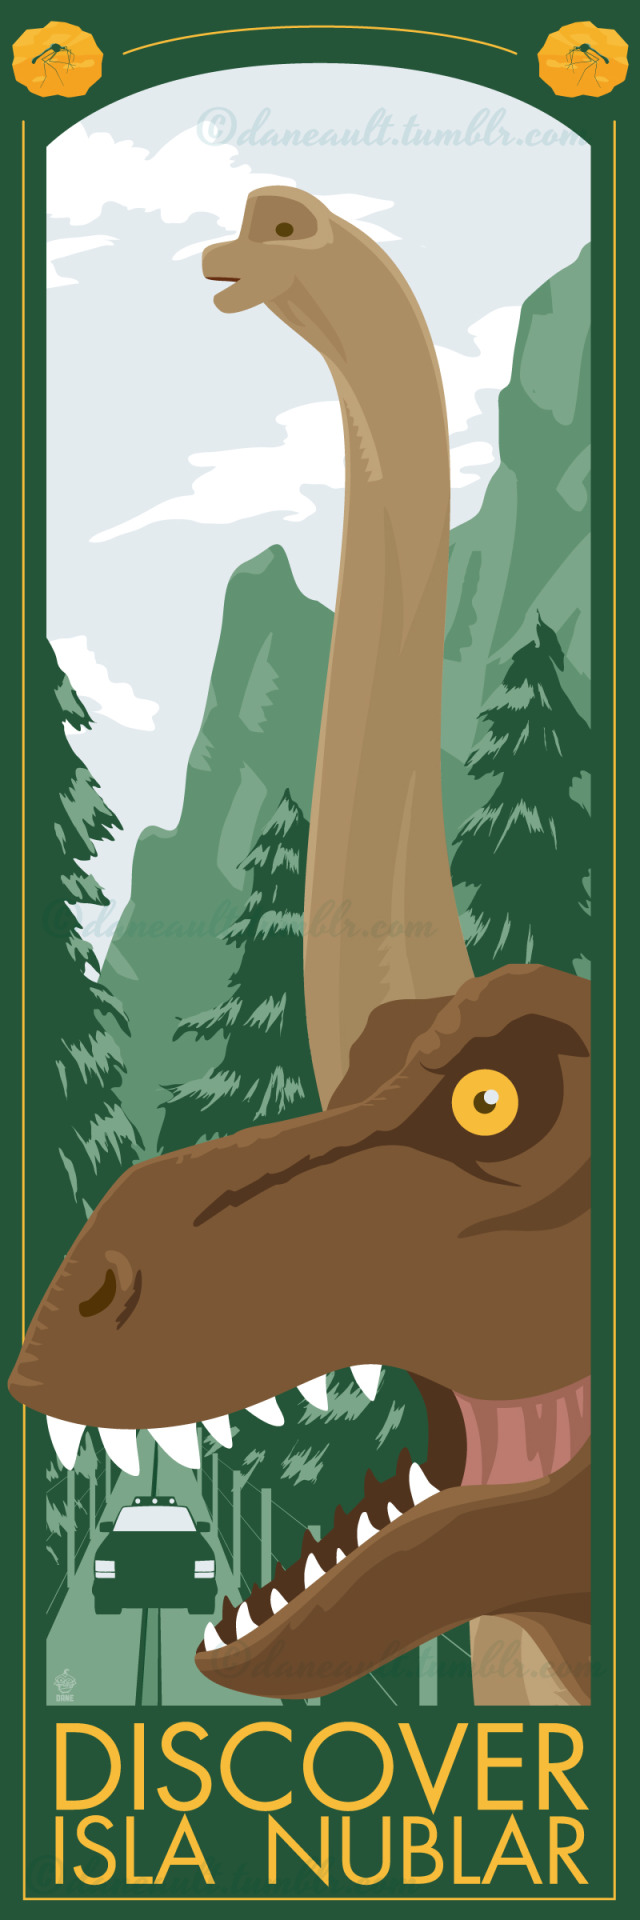 """""""Discover Isla Nublar"""" - Jurassic Park print for ltdartgallery's upcoming """"Picture's Worth a Thousand Words"""" Group art show. I'm pretty happy with how this ended up. I've been fighting to make this print for near 4 years. Start and stop, throw it away, step away, come back in 6 months to try again. Finally after so many stops and starts it came out EXACTLY how I wanted it.  The print is Giclee on watercolor paper, 12"""" x 36"""" (yeah, it's pretty tall), LTD edition TBD."""